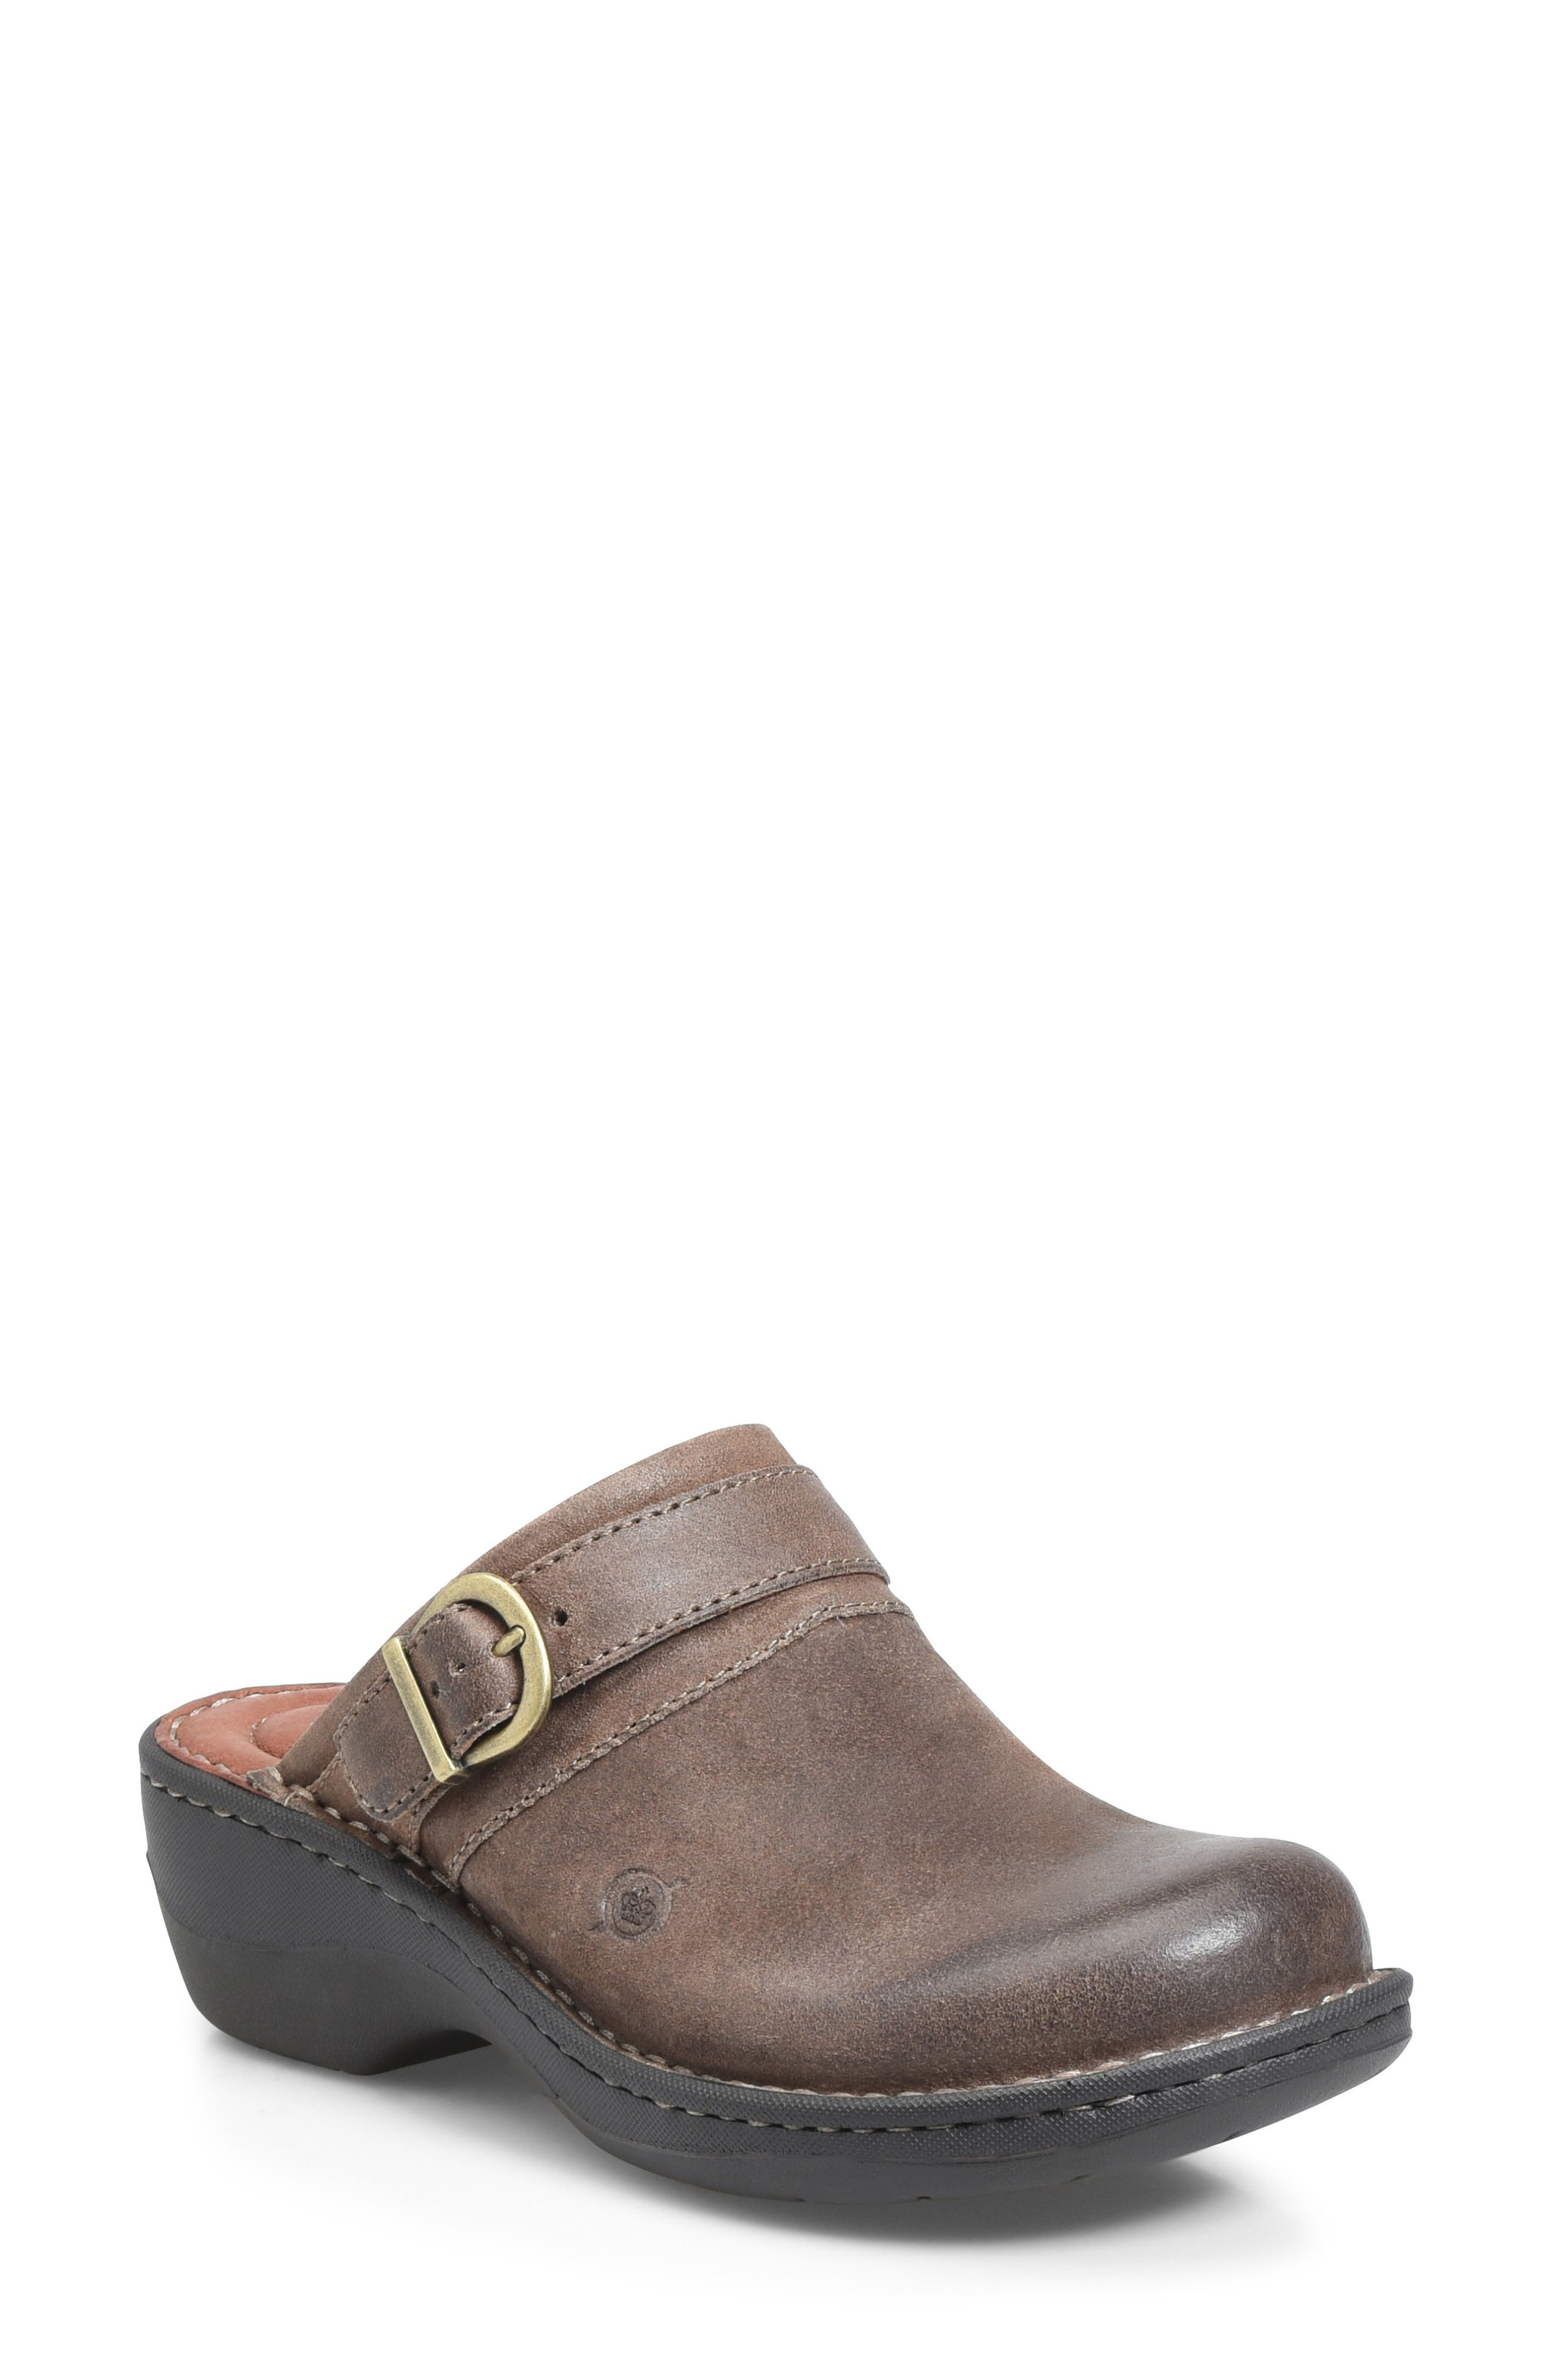 BØRN,                             Avoca Clog,                             Main thumbnail 1, color,                             TAUPE DISTRESSED LEATHER